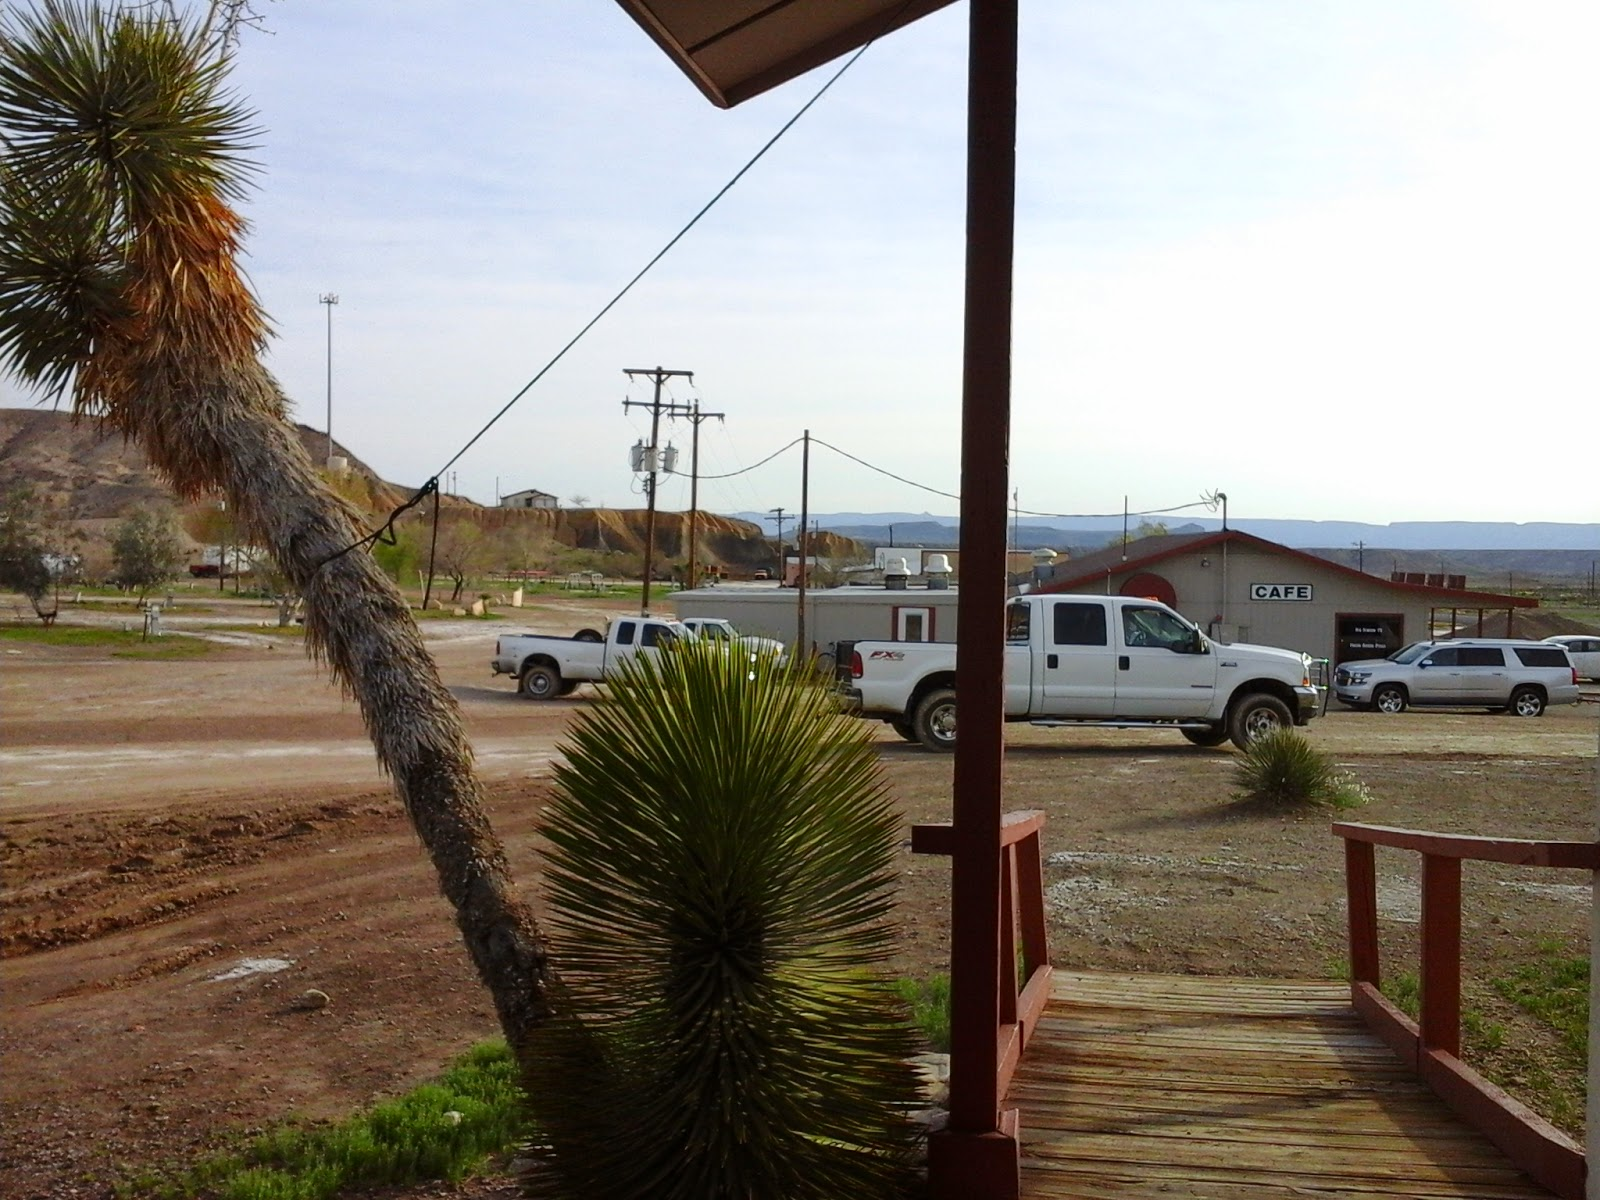 The field lab almost home for Big bend motor inn